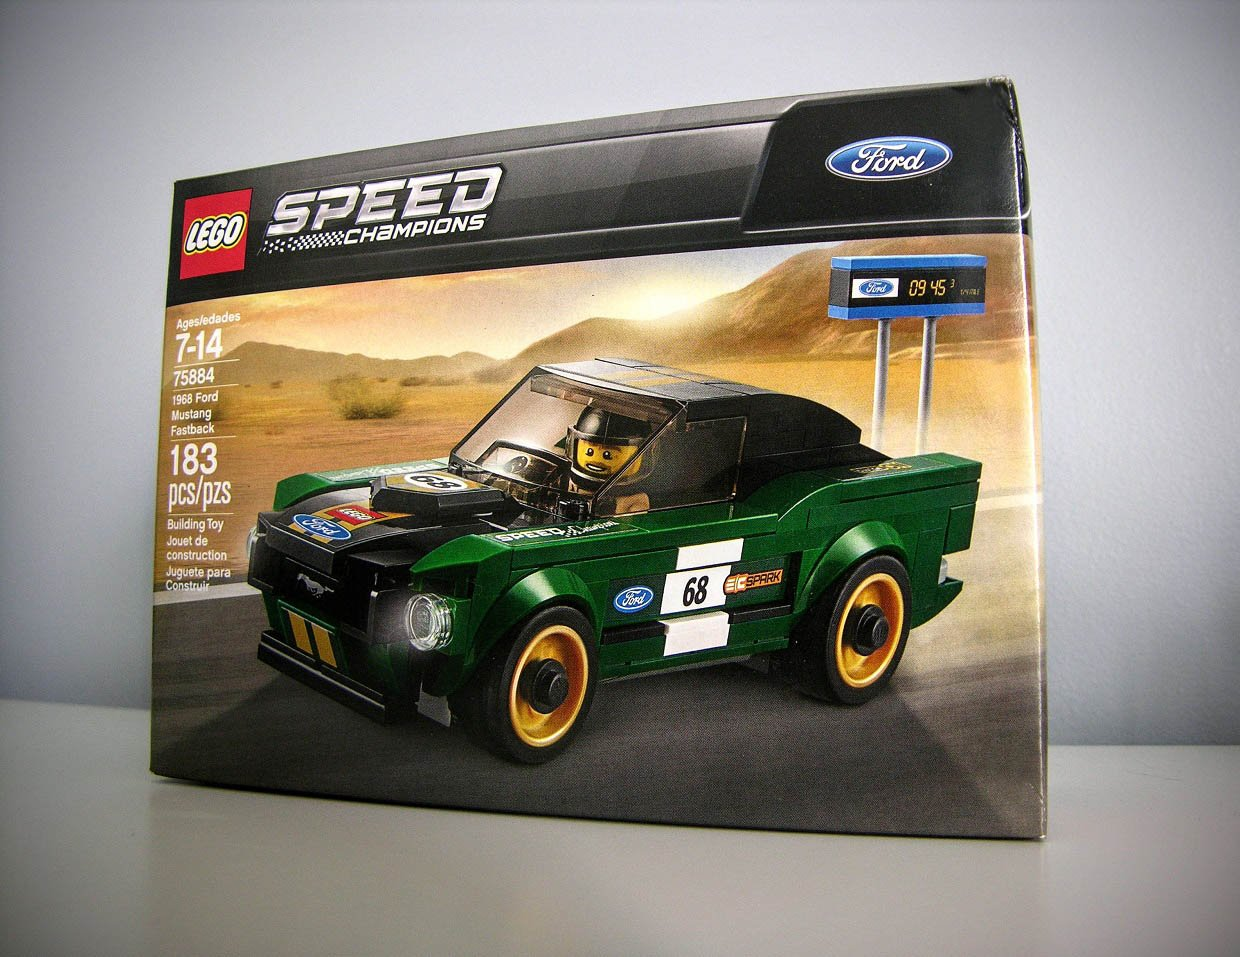 1968 Ford Mustang Fastback LEGO Kit Review: Retro Righteousness